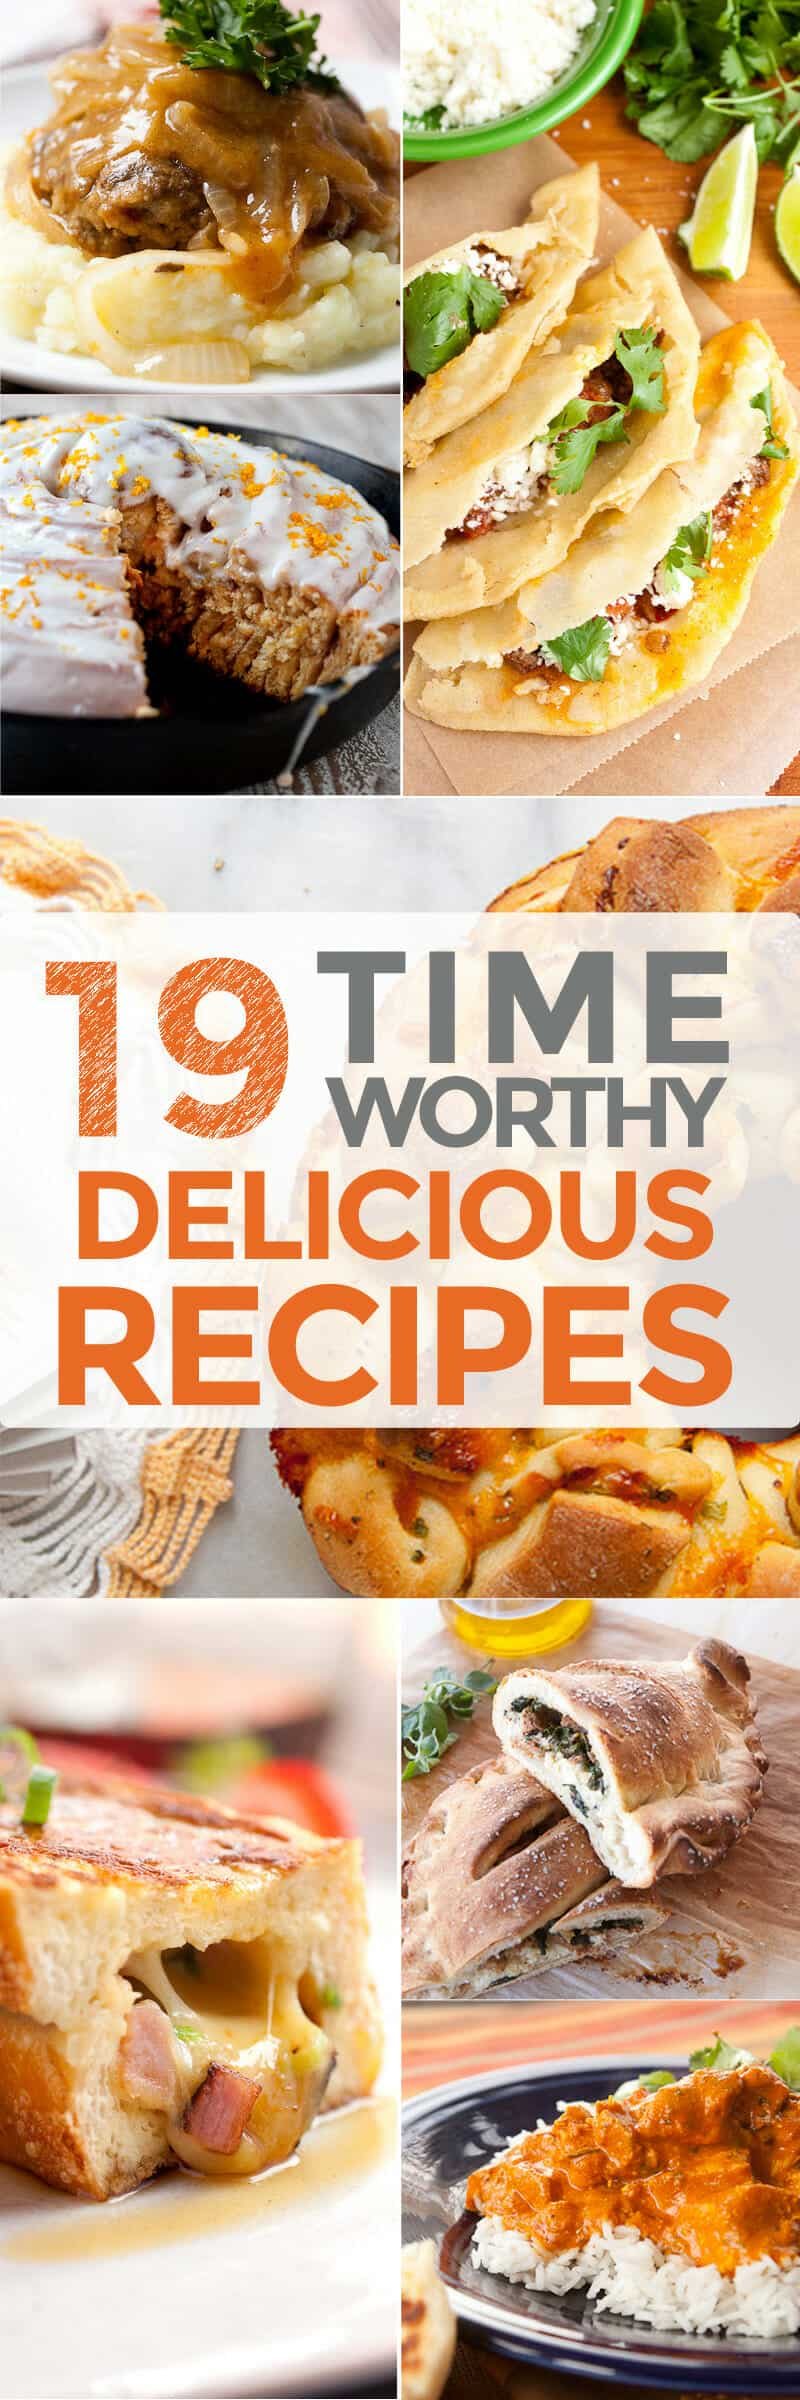 19 Time-Worthy Delicious Recipes: It's great to have quick recipes for weeknight dinners, but it's also nice to have some sure-fire delicious recipes when you have some extra time to make something really special. Here are 19 of my favorite recipes when you have extra time to enjoy cooking! | macheesmo.com